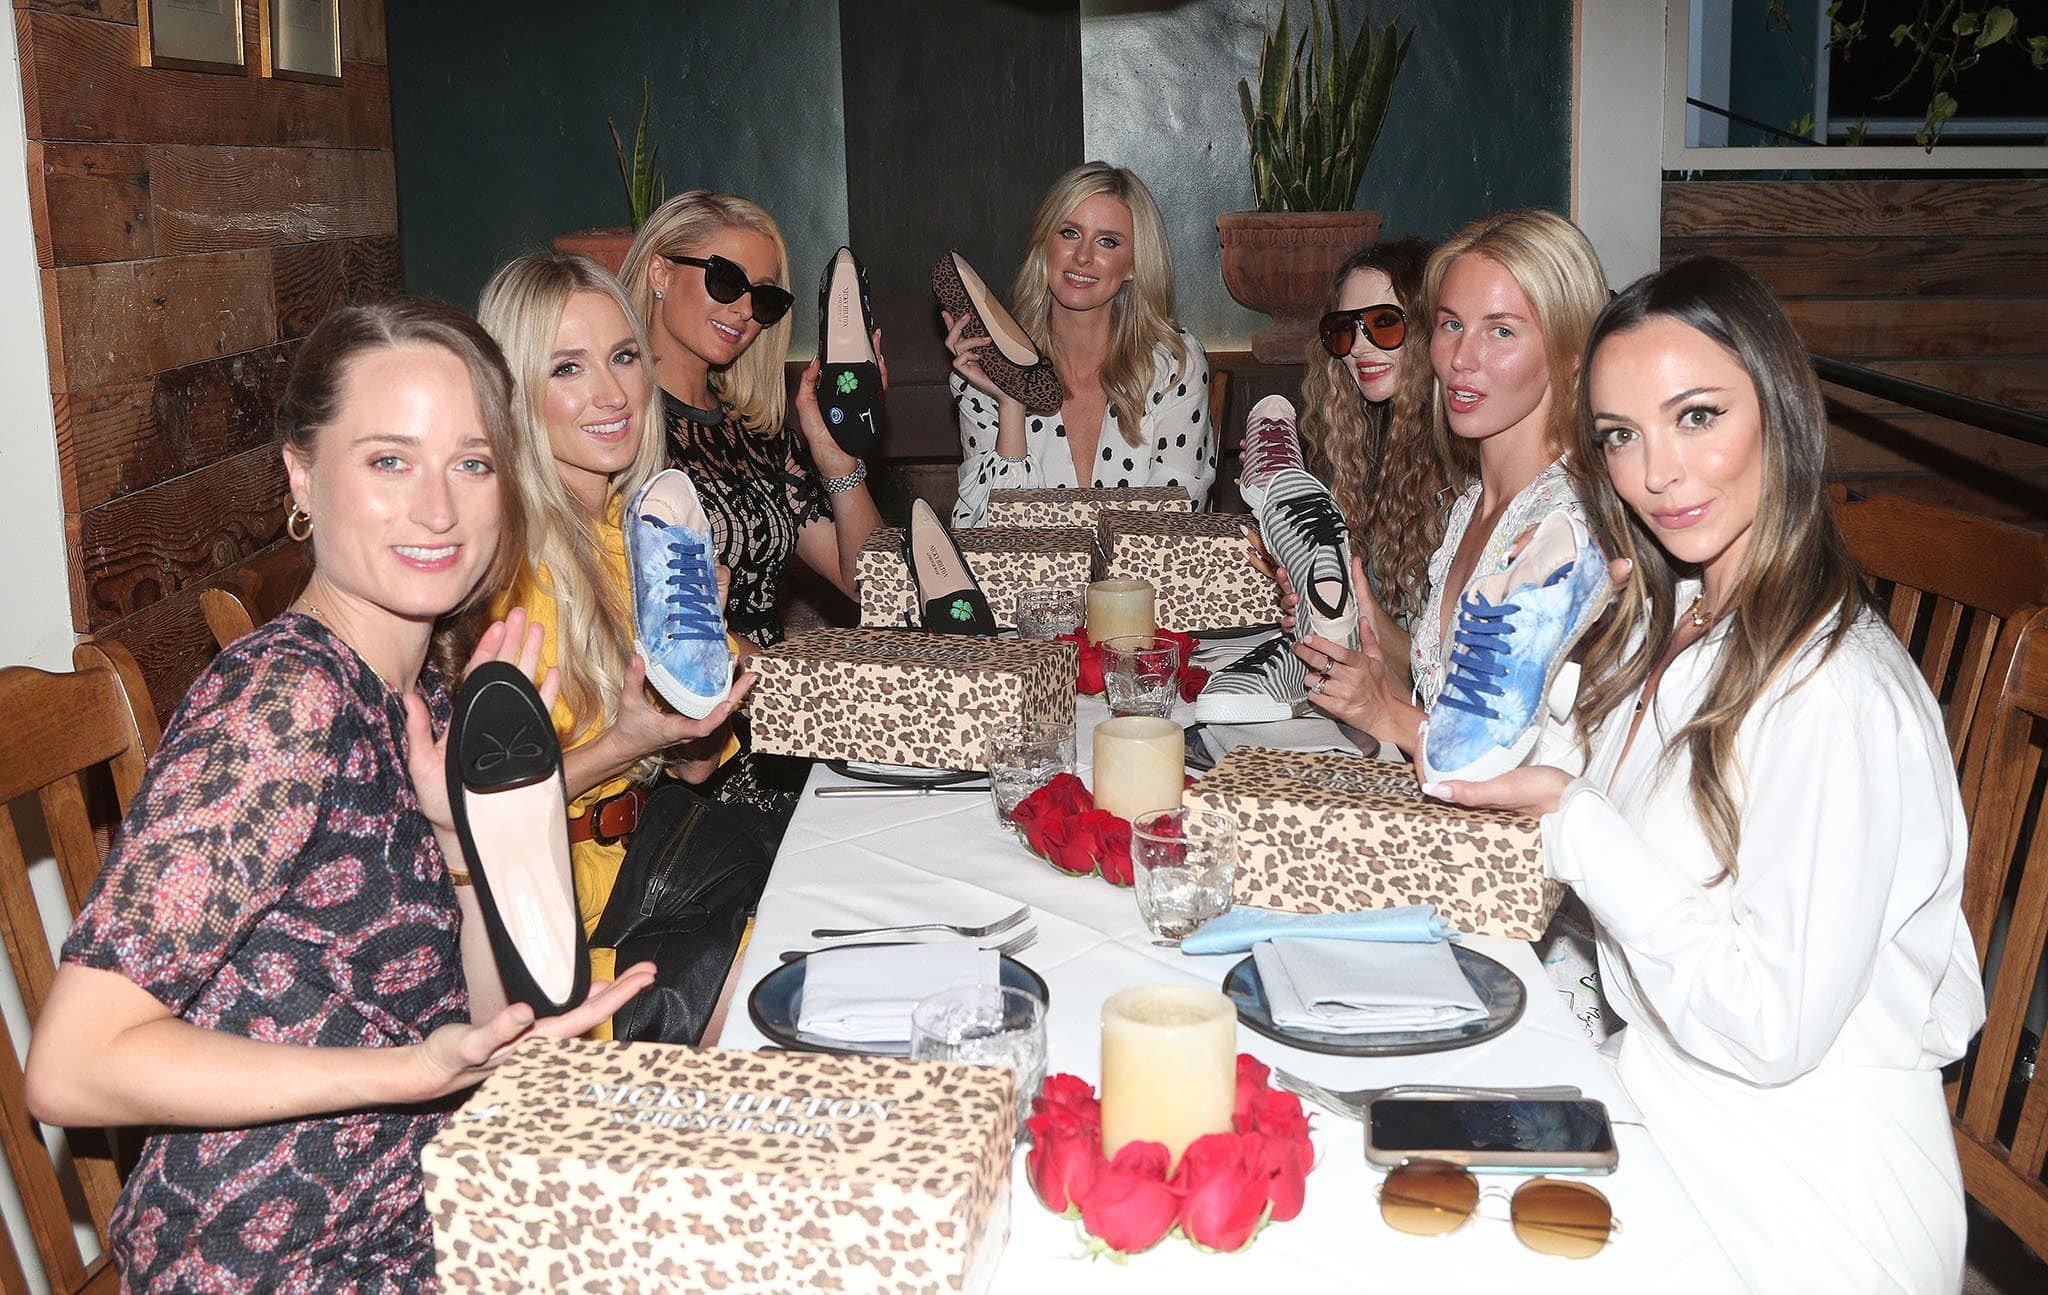 Nicky Hilton gives her friends shoes from her French Sole collaborative collection